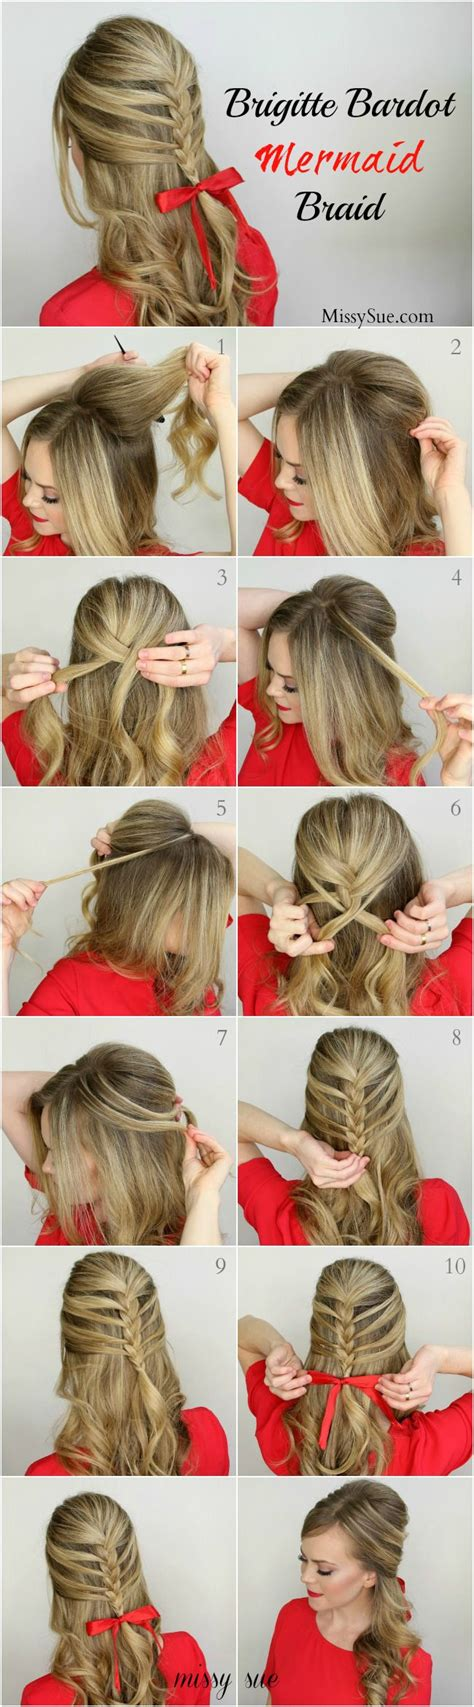 crocodile plait hairstyle 17 best images about braided hairstyles on pinterest